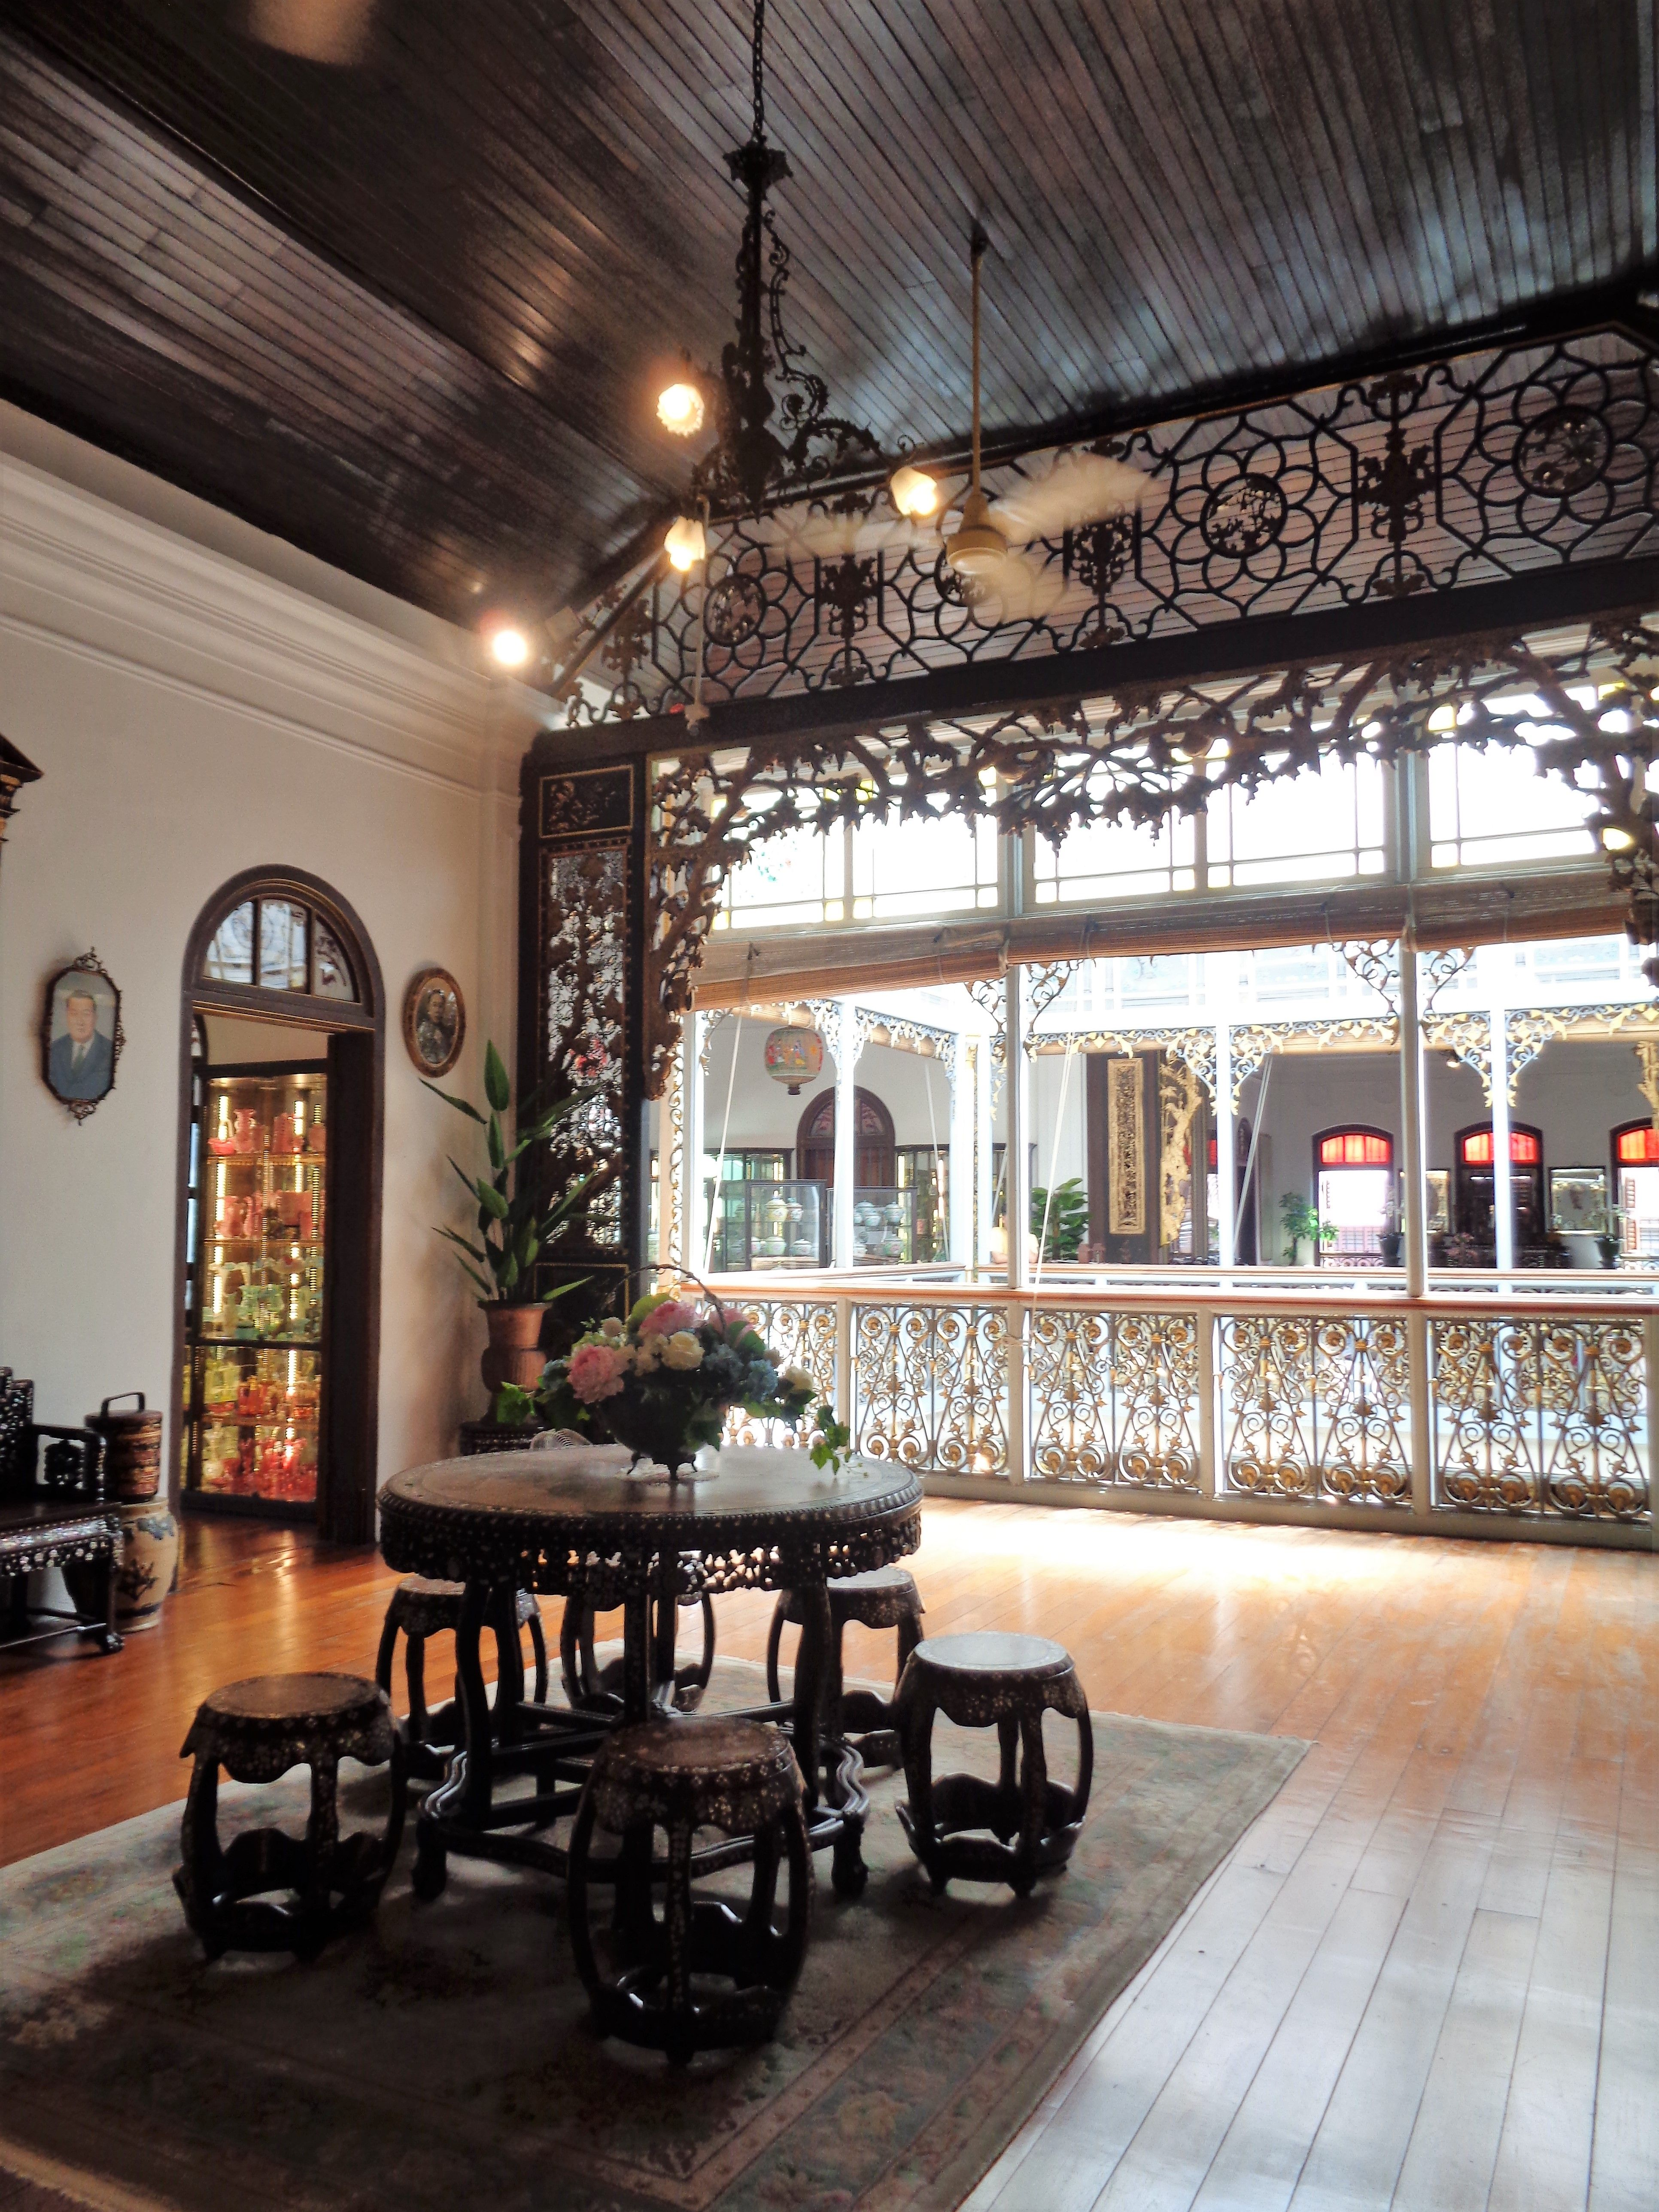 The second floor of the Penang Peranakan Mansion